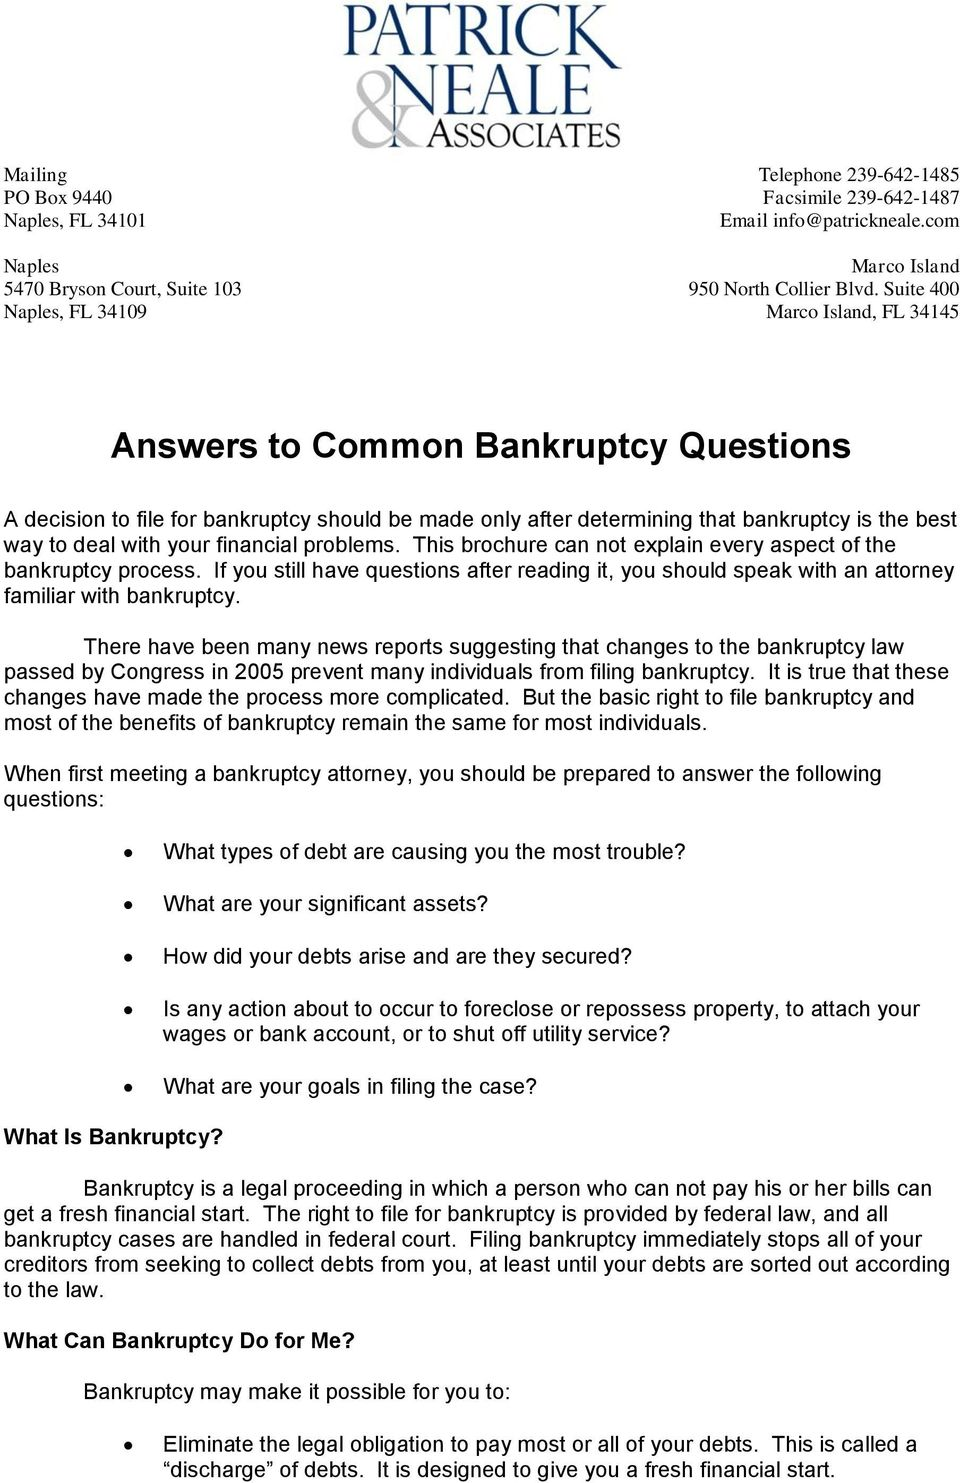 financial problems. This brochure can not explain every aspect of the bankruptcy process. If you still have questions after reading it, you should speak with an attorney familiar with bankruptcy.